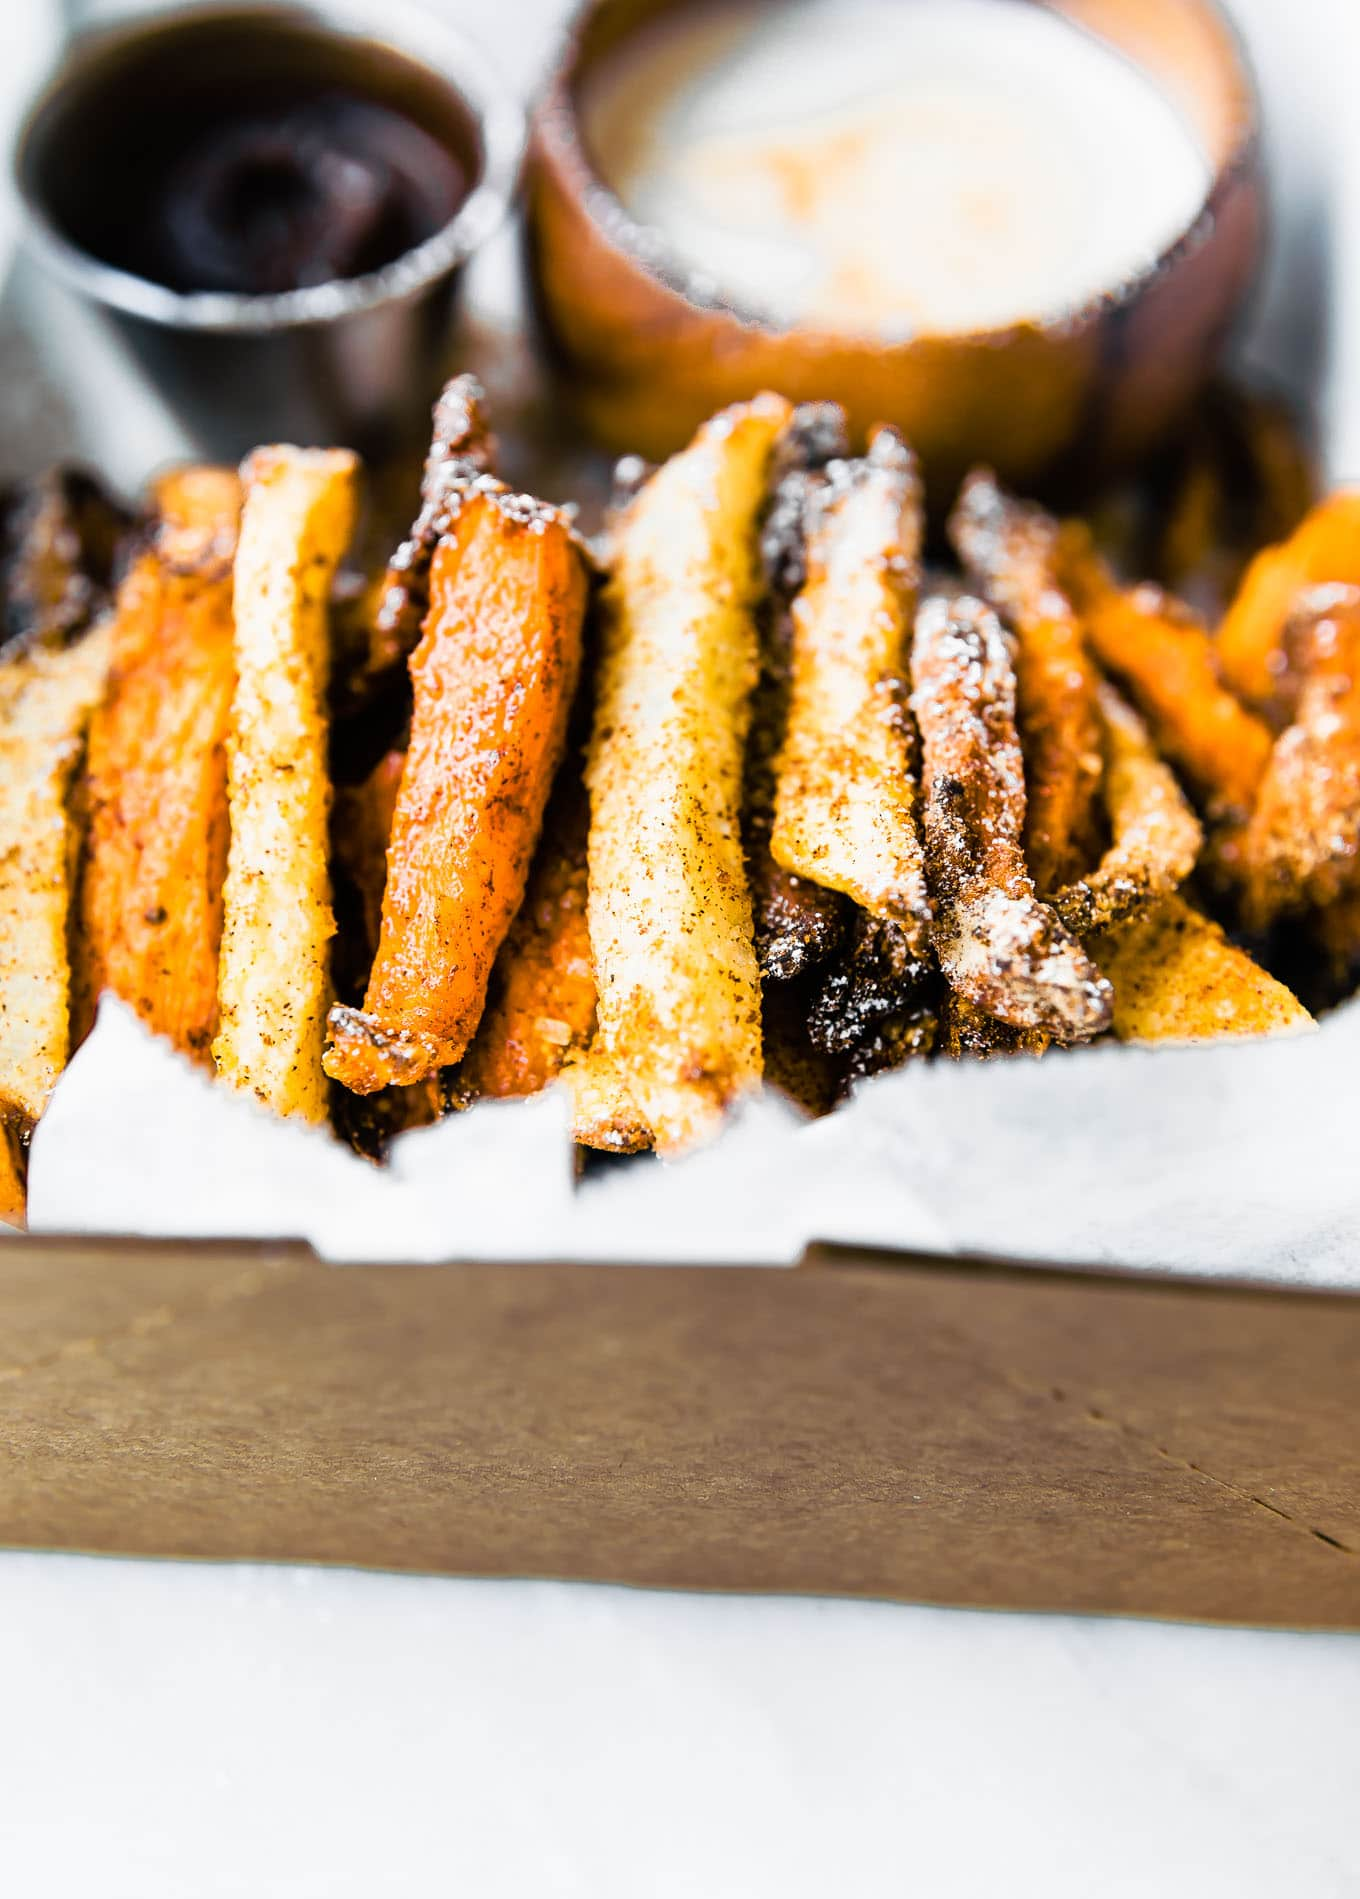 Air Fried Sweet Potato Dessert Fries! This healthier, refined sugar free dessert recipe is made with sweet potatoes that have a sweet cinnamon coating. Gluten free with vegan, dairy free, and low carb options. Oven baked option as well.